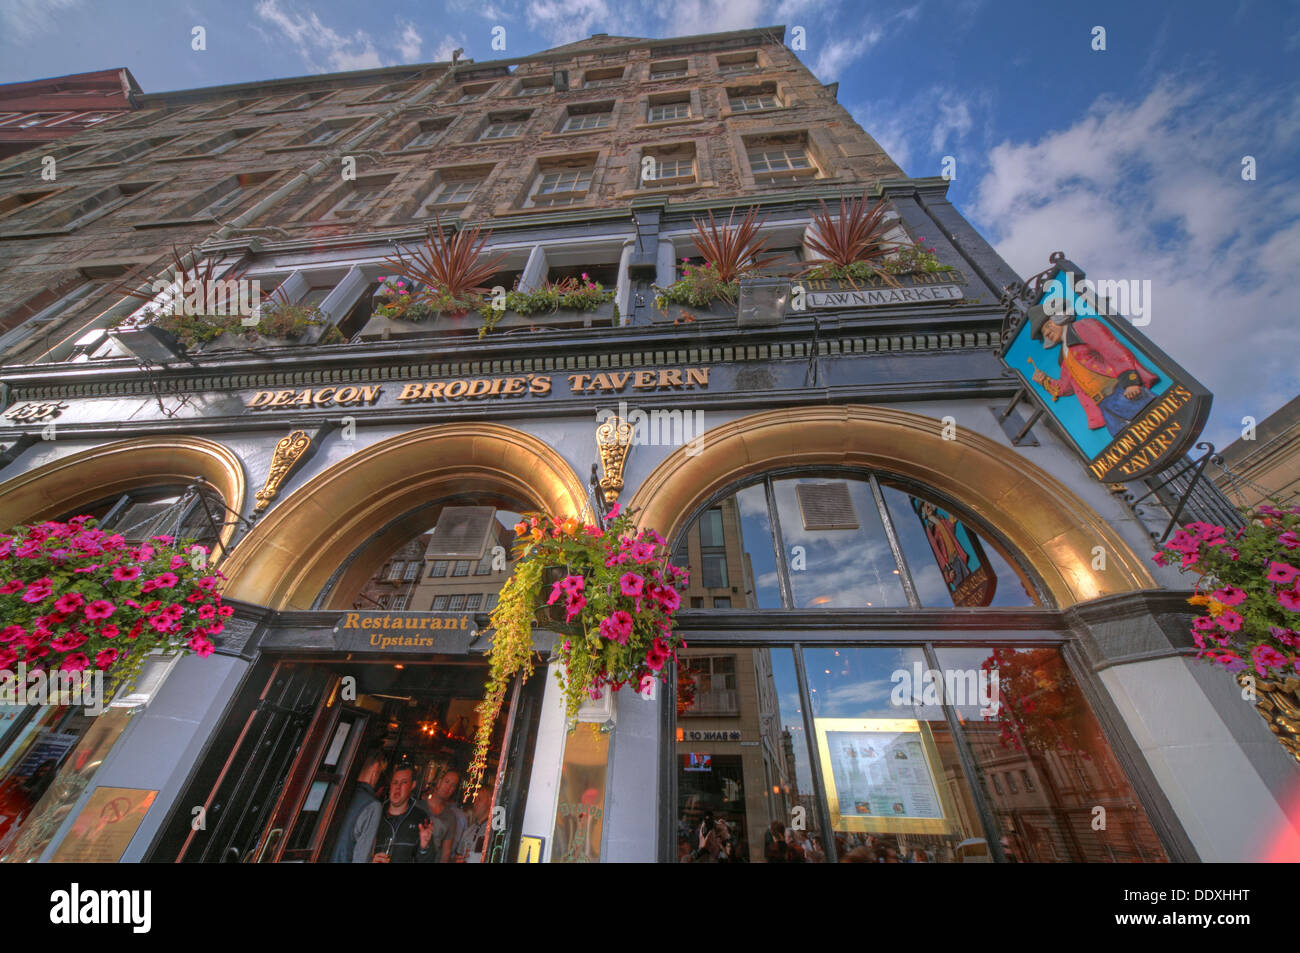 Deacon Brodies Tavern, Royal Mile, EDN, Edinburgh City, Scotland, UK - looking upwards - Stock Image